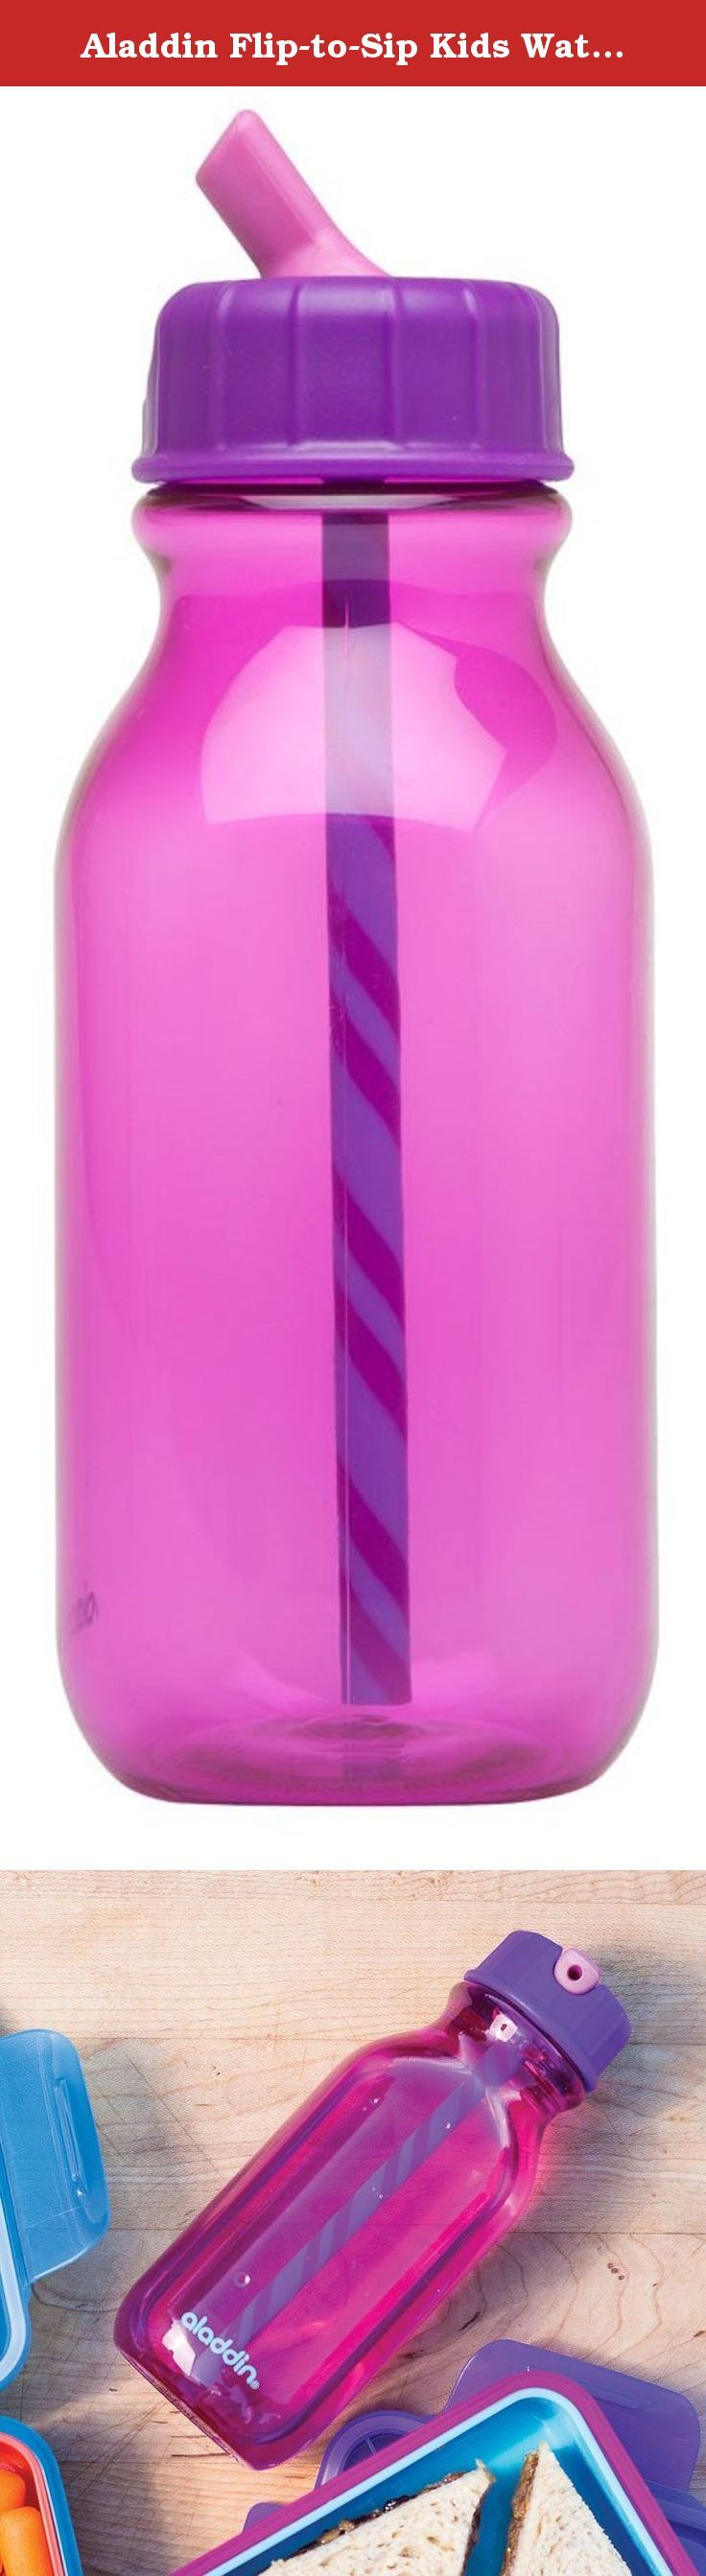 Aladdin Flip-to-Sip Kids Water Bottle 14oz, Purple. DISHWASHER SAFE FOR YOU, FUN TO FLIP AND SIP FOR THEM. This durable water bottle will stand up to daily use and abuse from kids - and you can toss it in the dishwasher. Mix and match with our snack and sandwich kits to make the perfect lunch box set.